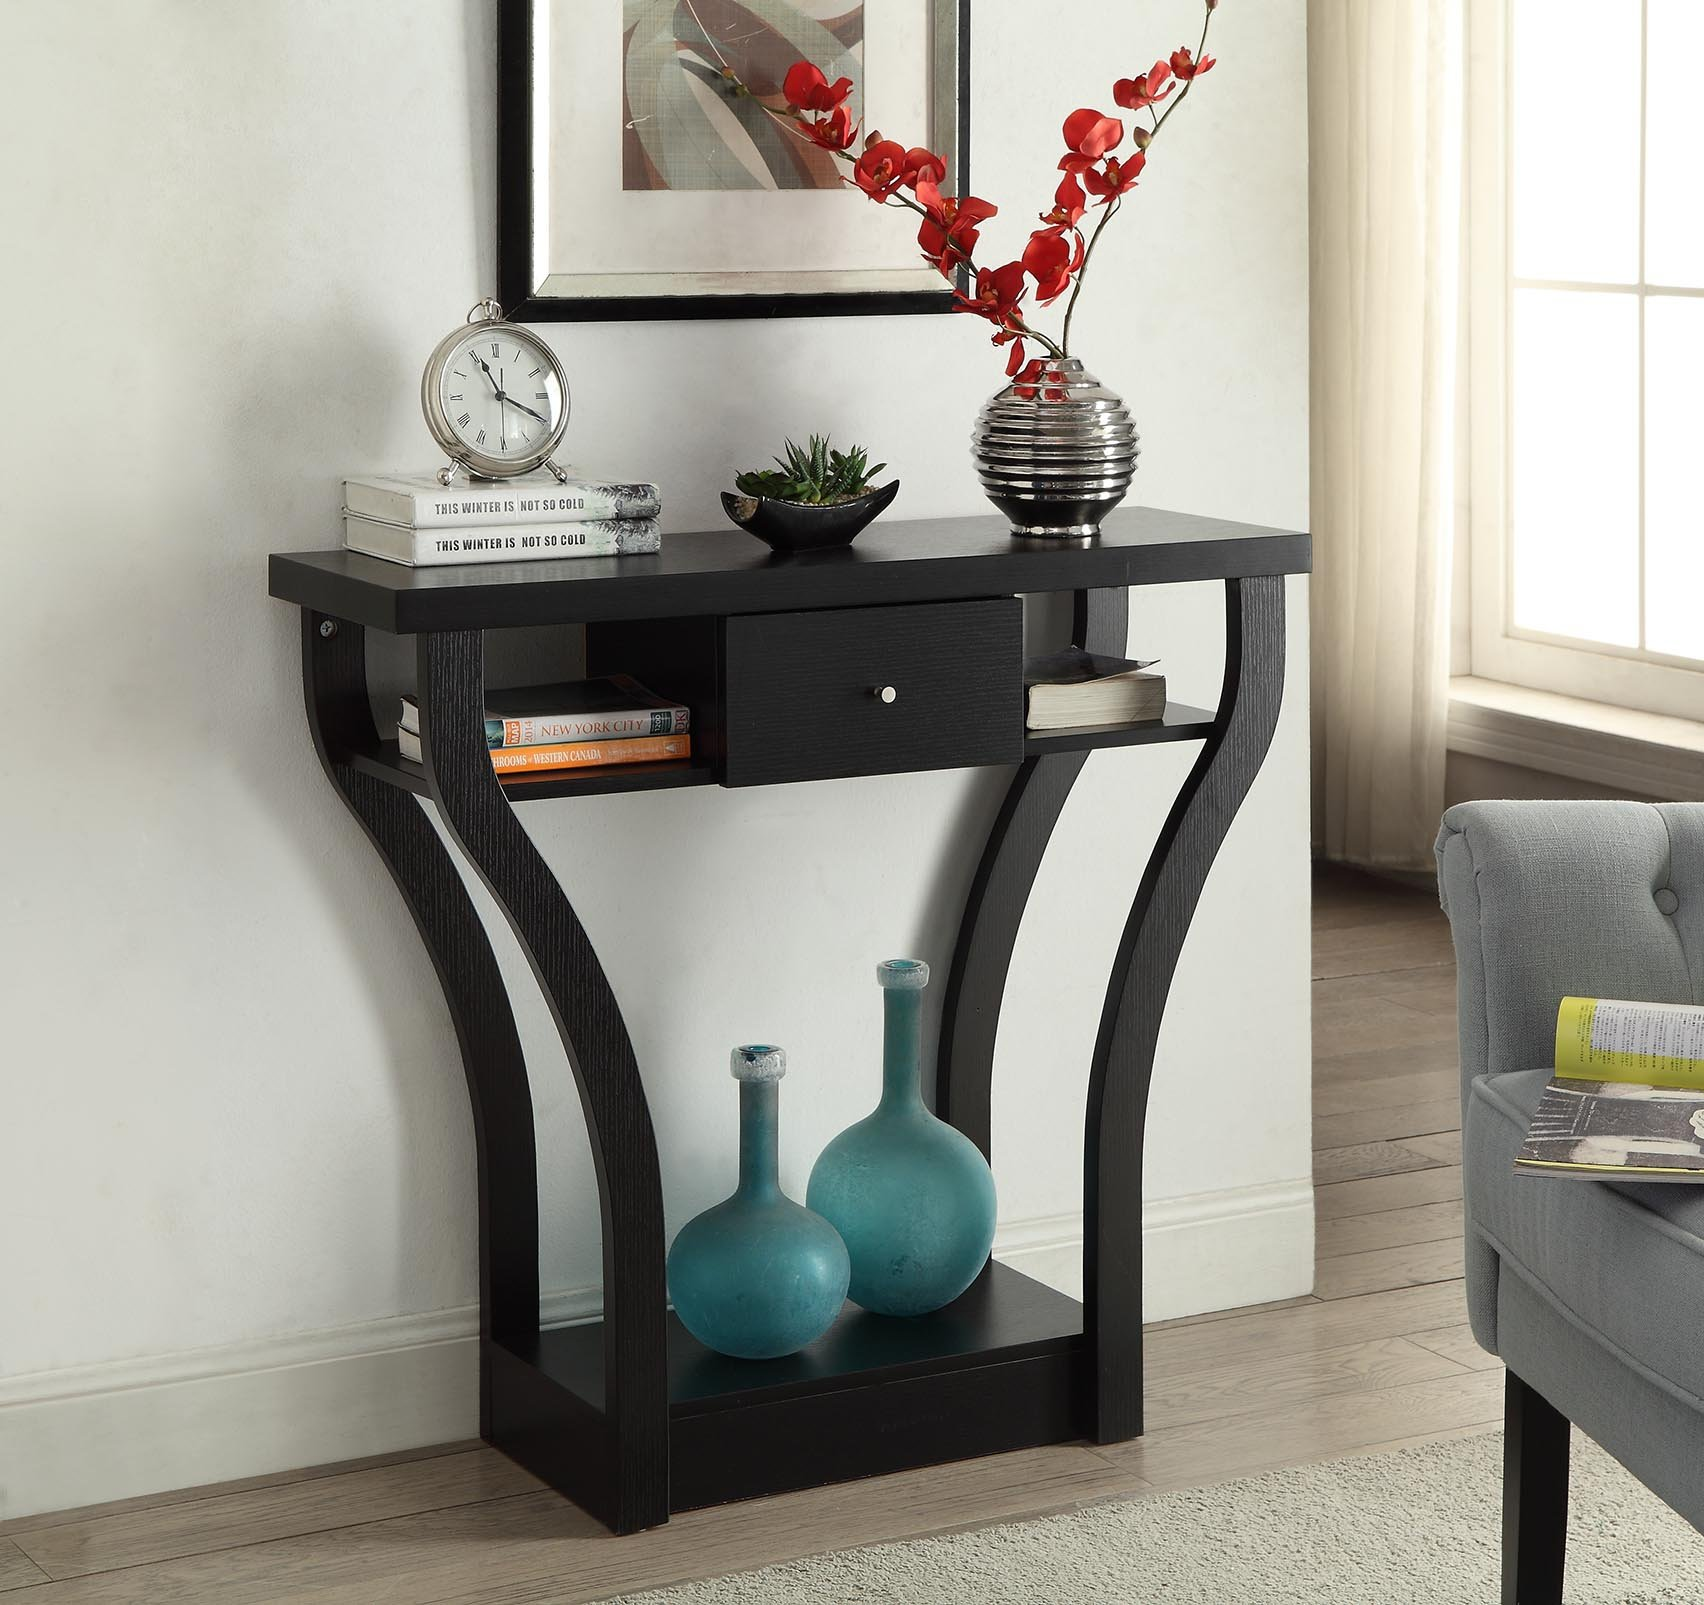 Black Finish Curved Console Sofa Entry Hall Table with Shelf / Drawer by eHomeProducts